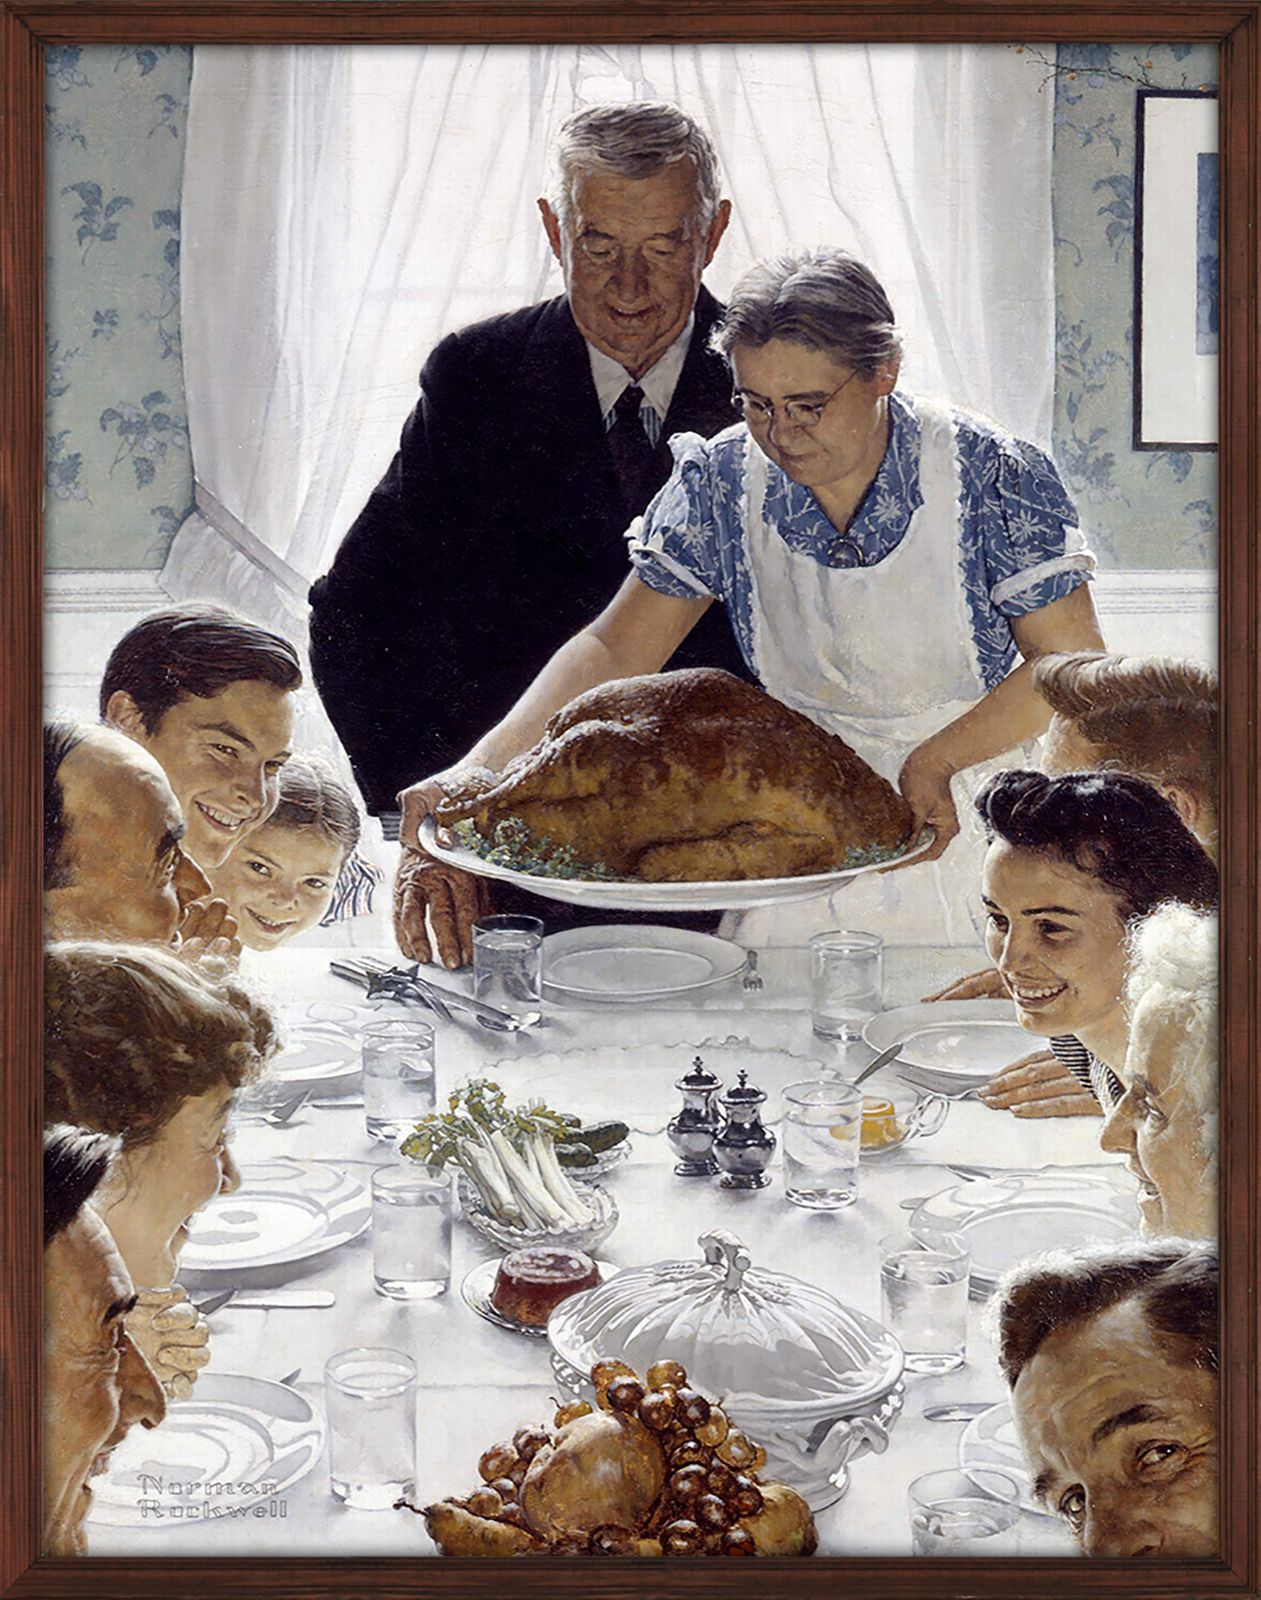 Norman Rockwell illustration of a Thanksgiving dinner